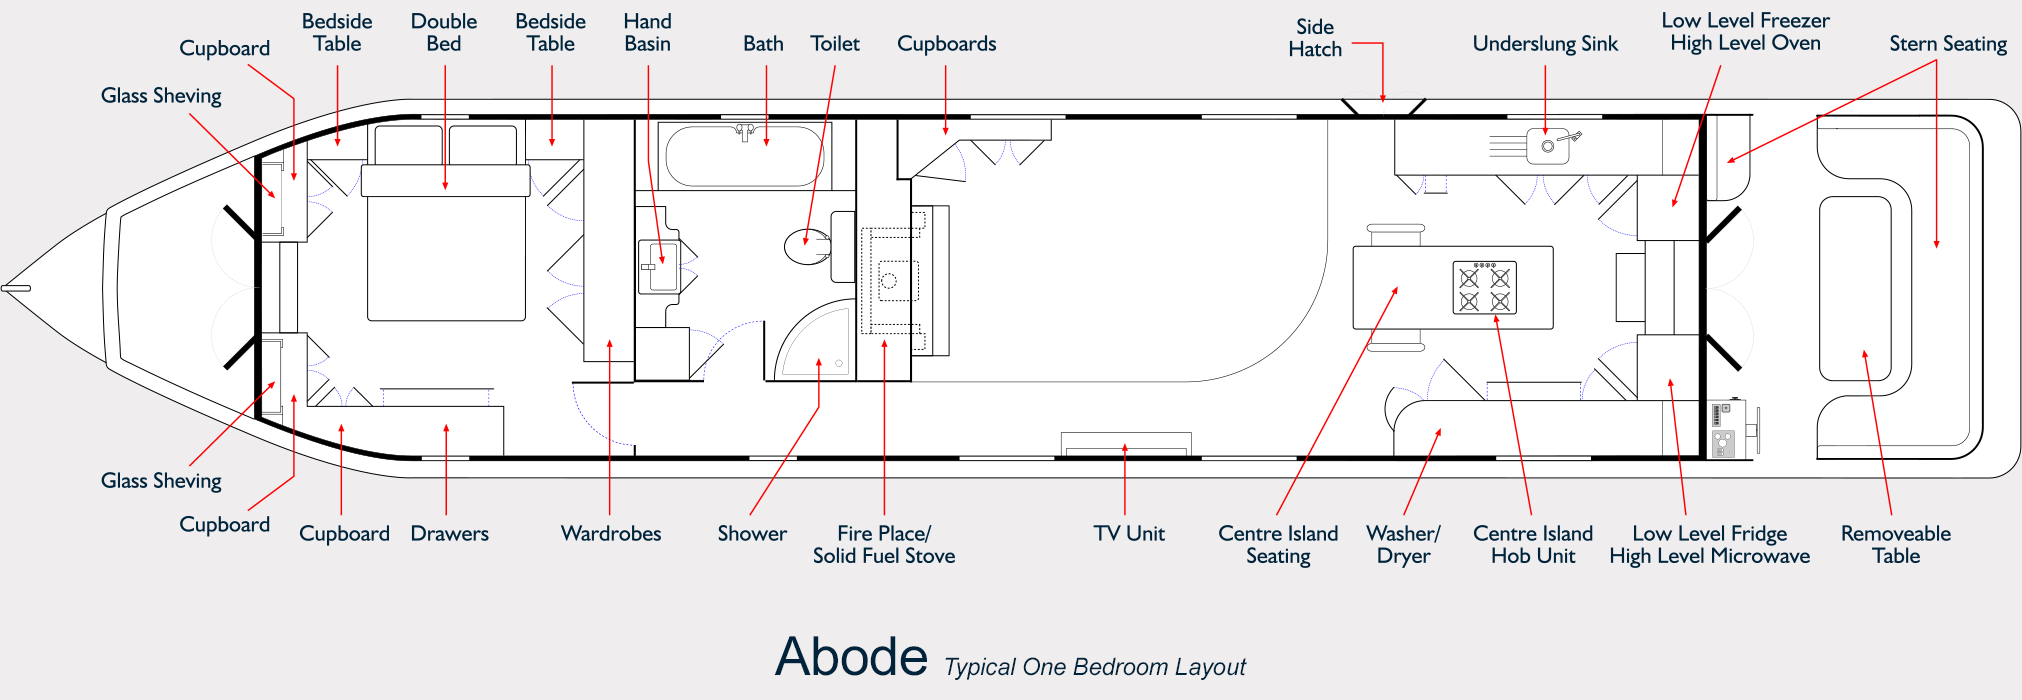 abobe-1bed-widebeam-technical-drawing